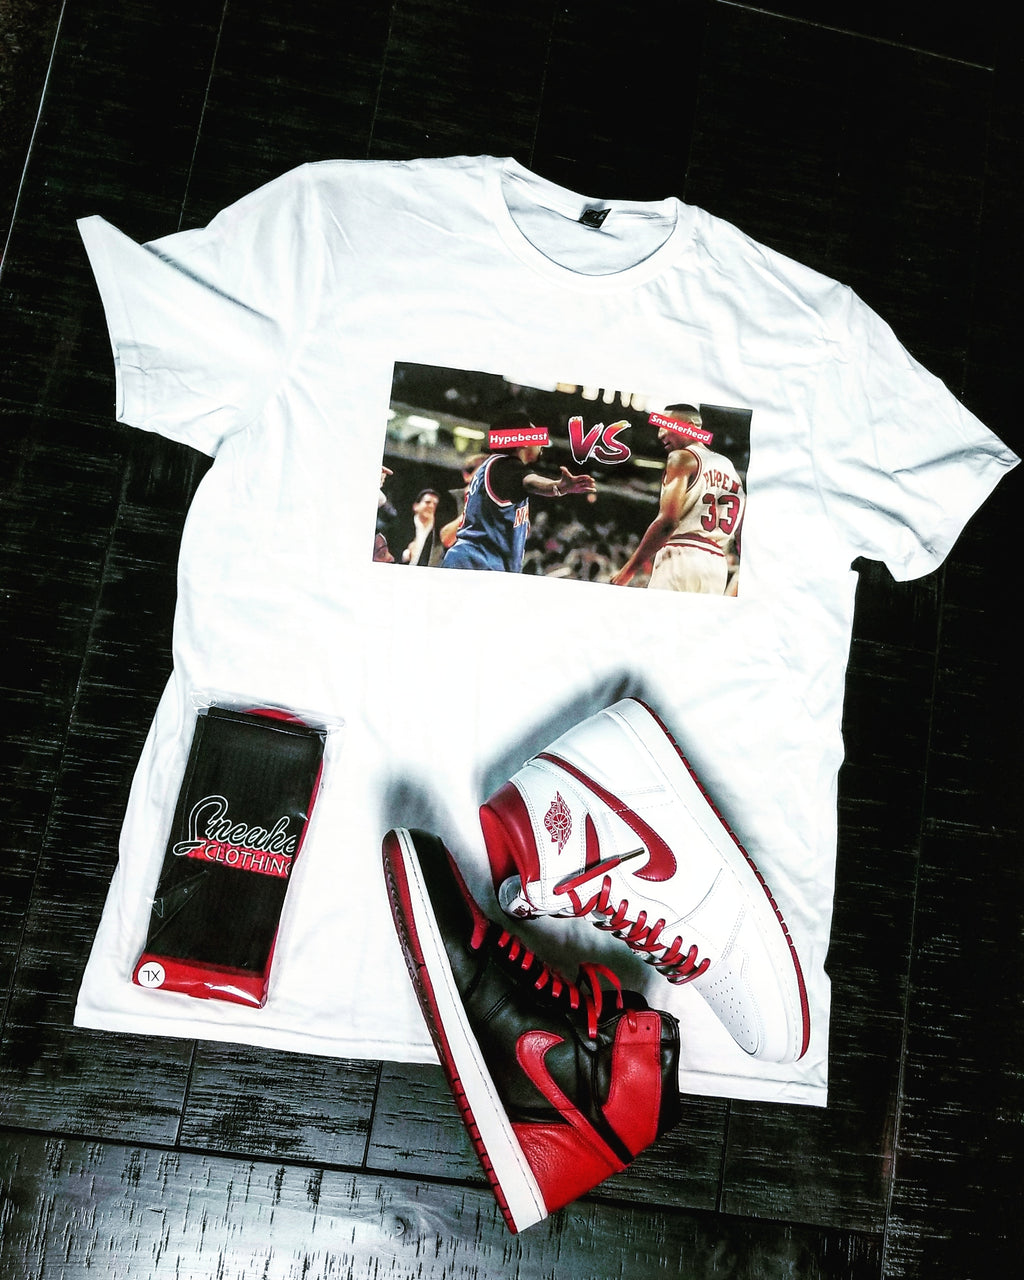 Exclusive SNEAKERHEAD vs HYPEBEAST 2.0 Shirt (sample) - SNEAKERHEADS CLOTHING LINE